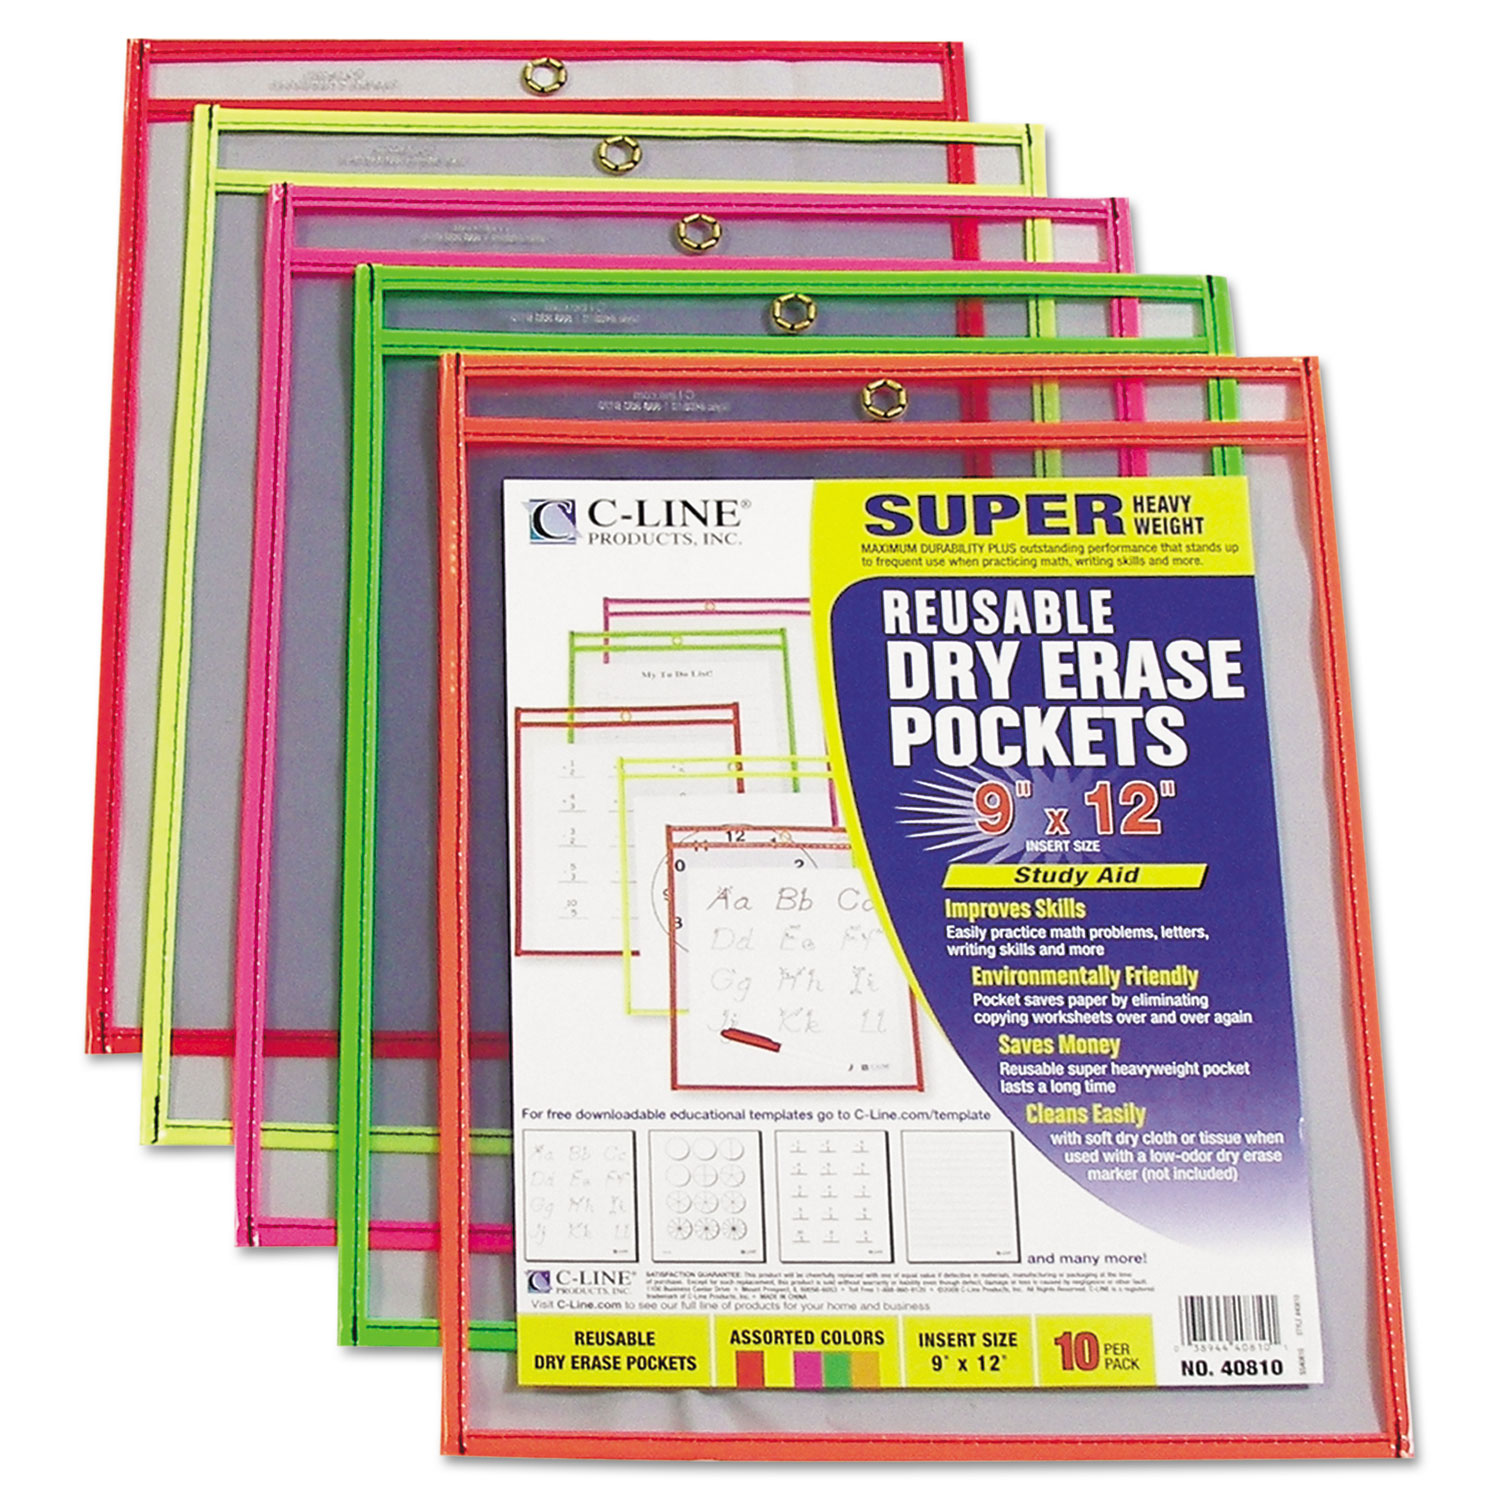 Reusable Dry Erase Pockets 9 X 12 Assorted Neon Colors 10 Pack